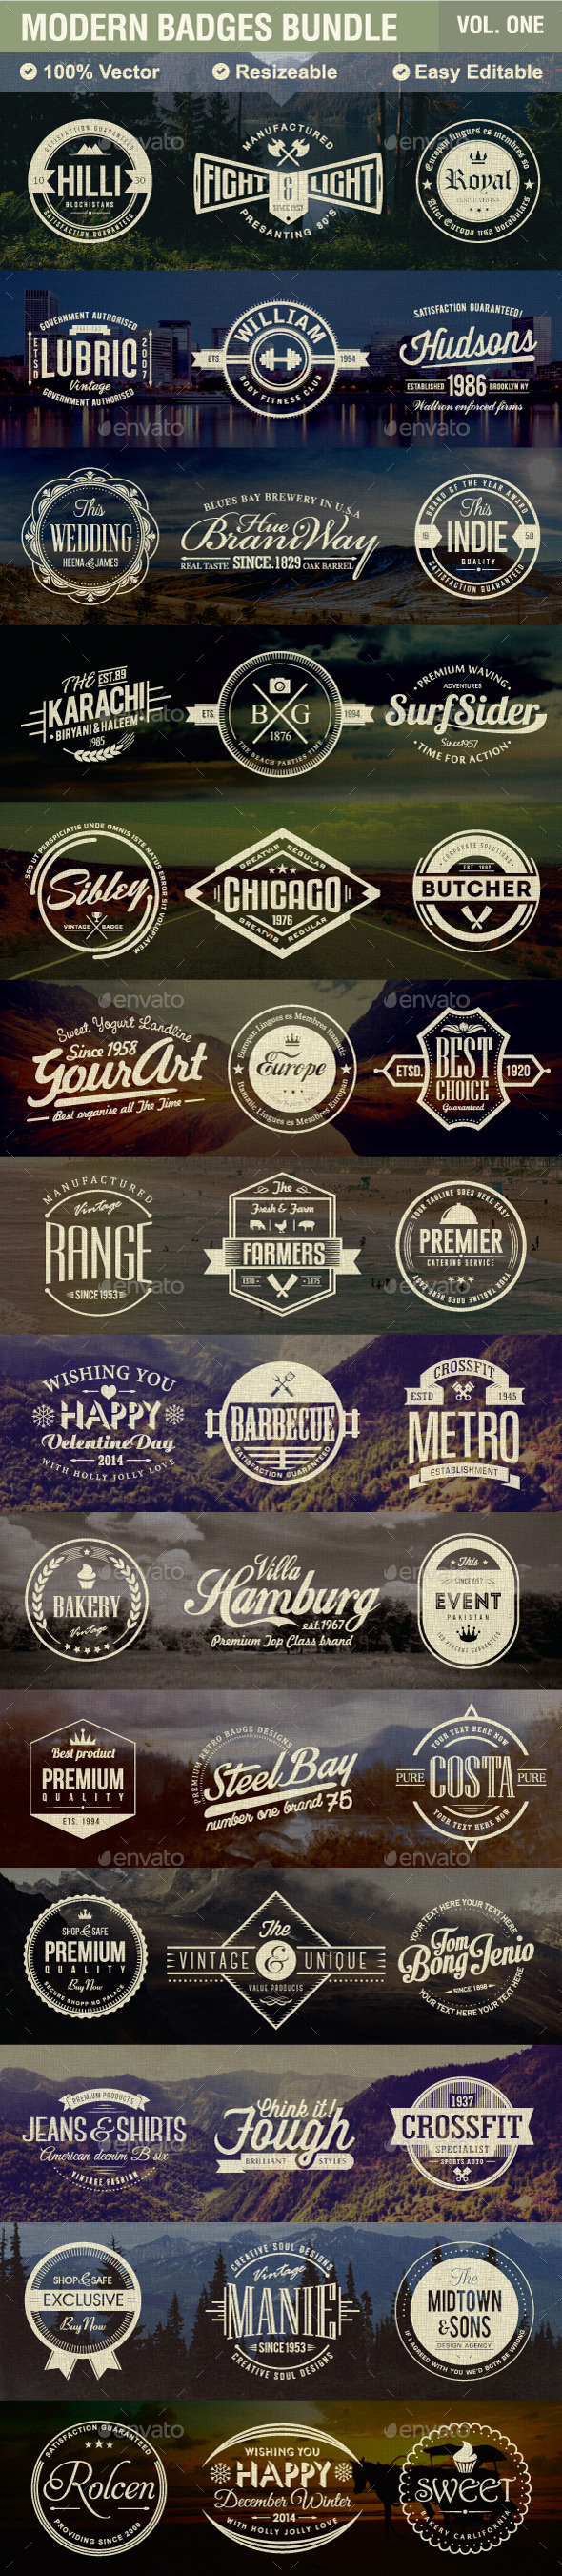 GraphicRiver Modern Badges Bundle 9716265